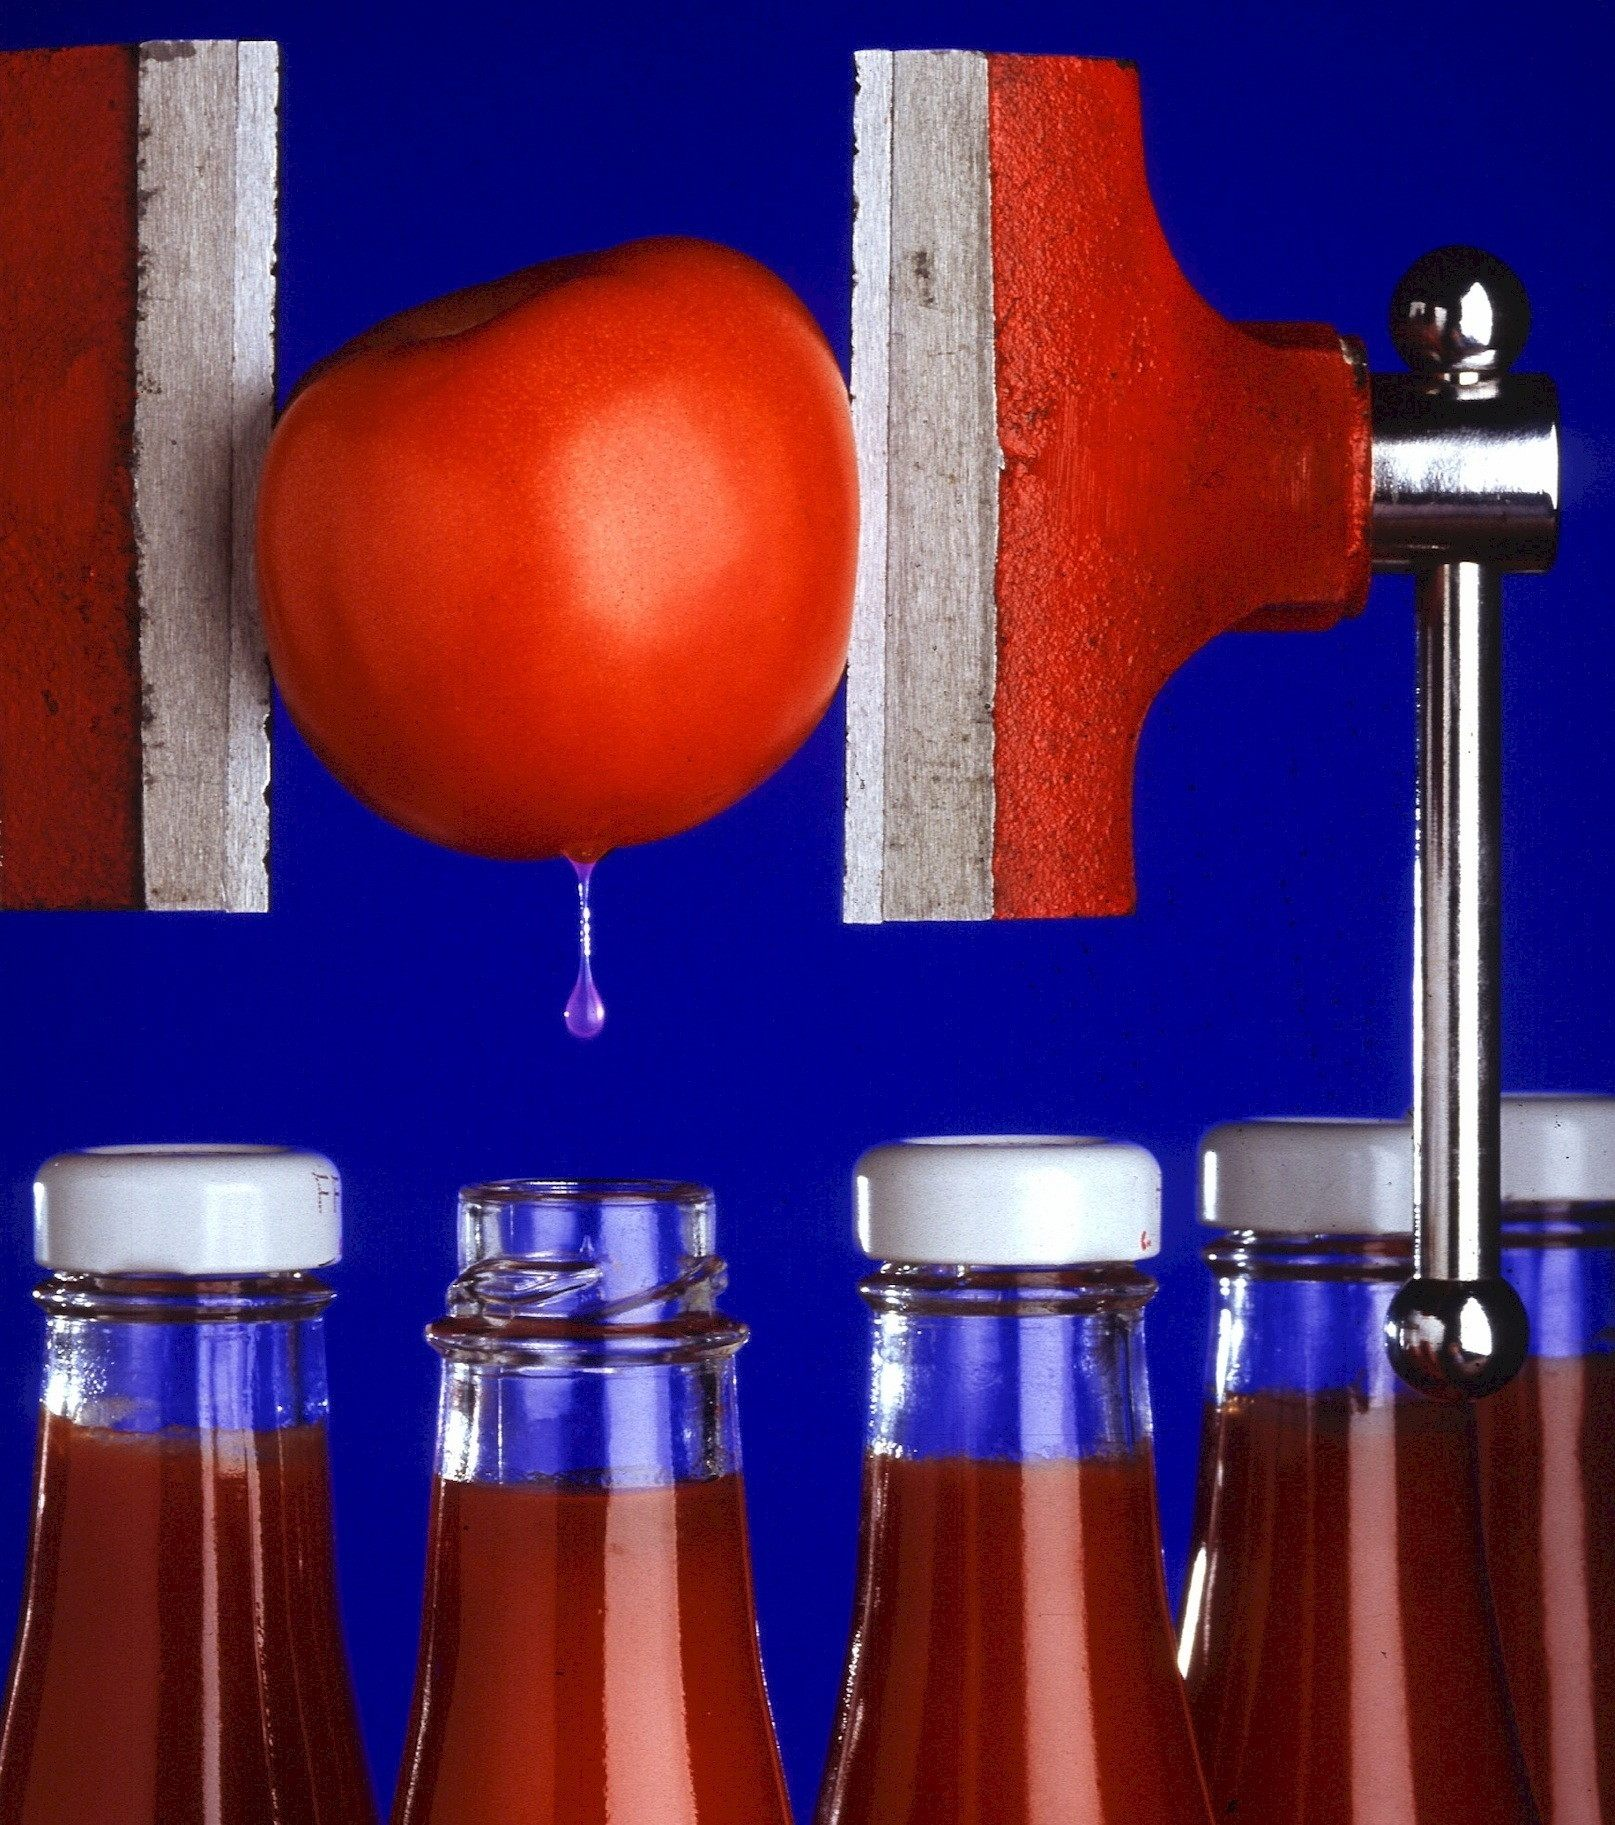 practice listening English online about tomato ketchup